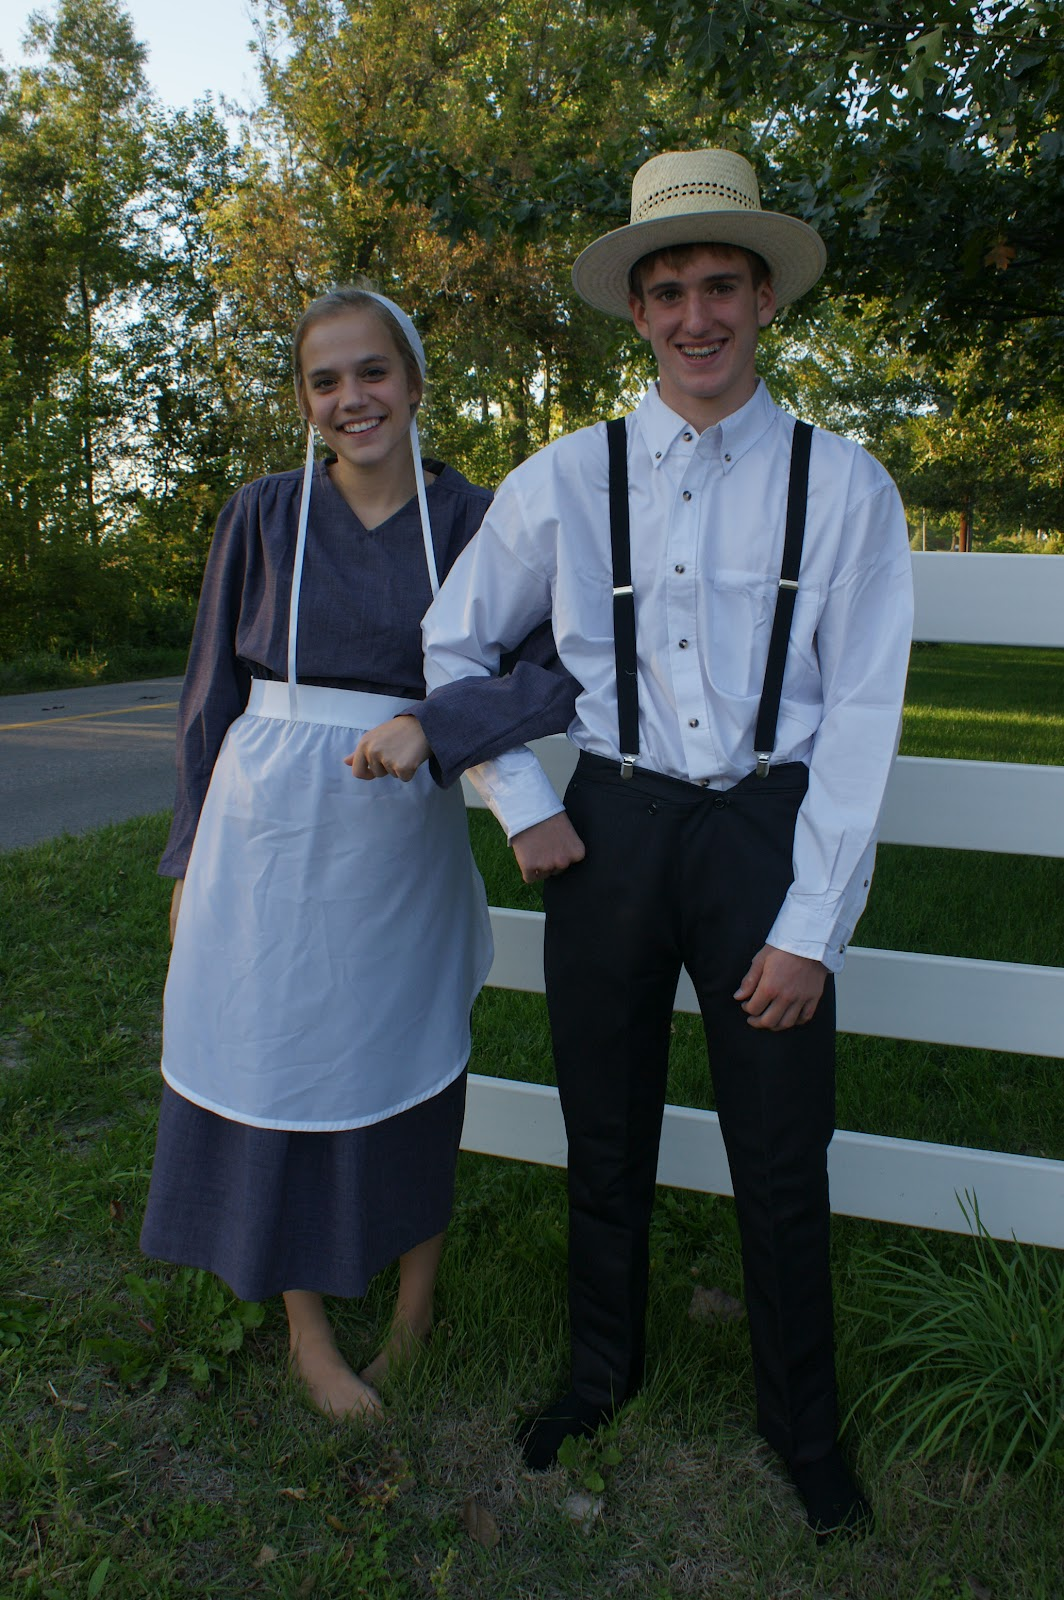 All things Amish: Costumes!